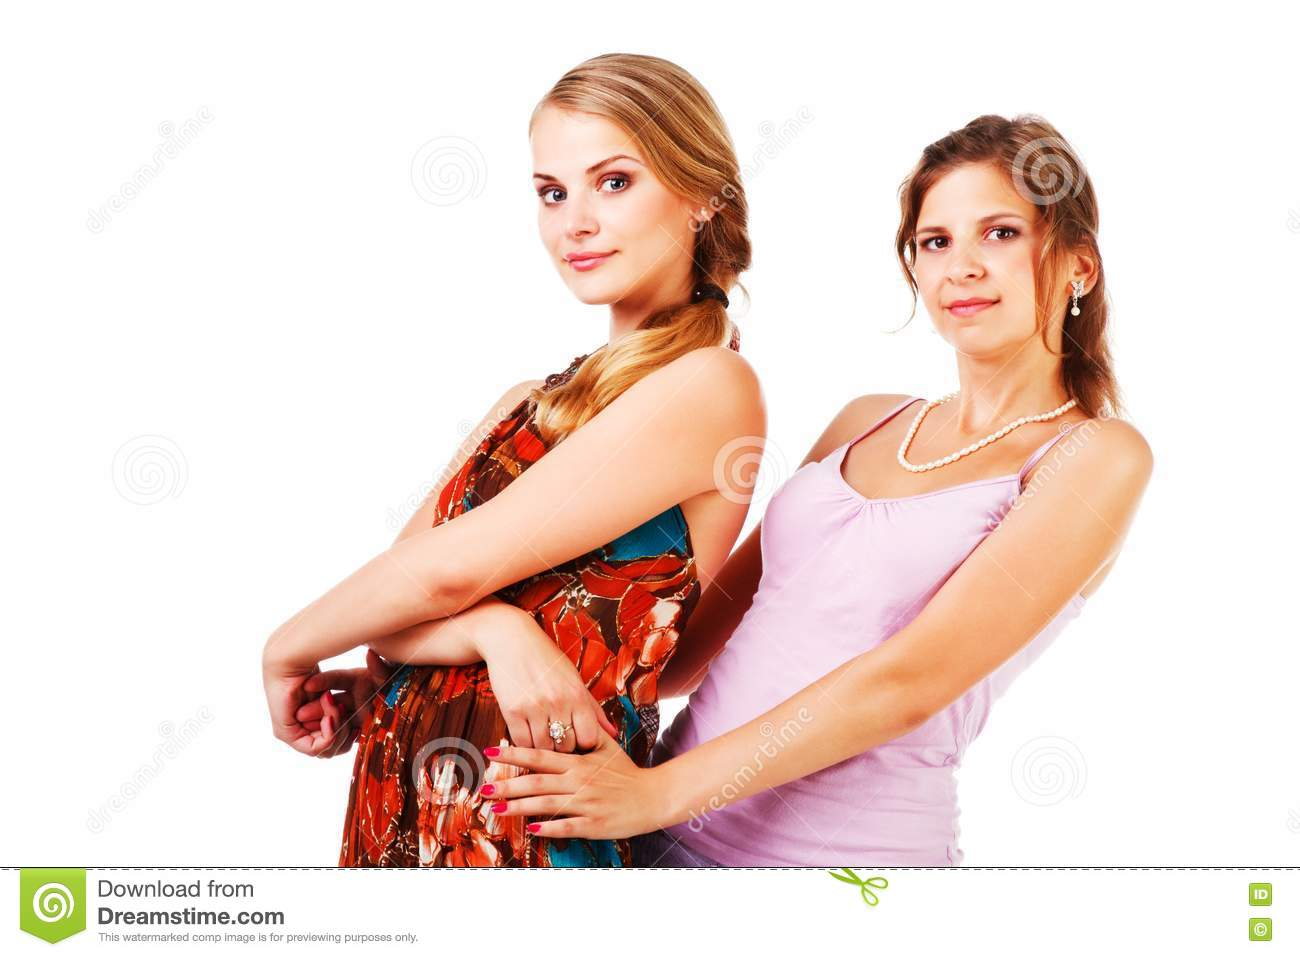 Charming young girls in colorful dress royalty free stock photos image 16693818 - Charming teenage girls image ...